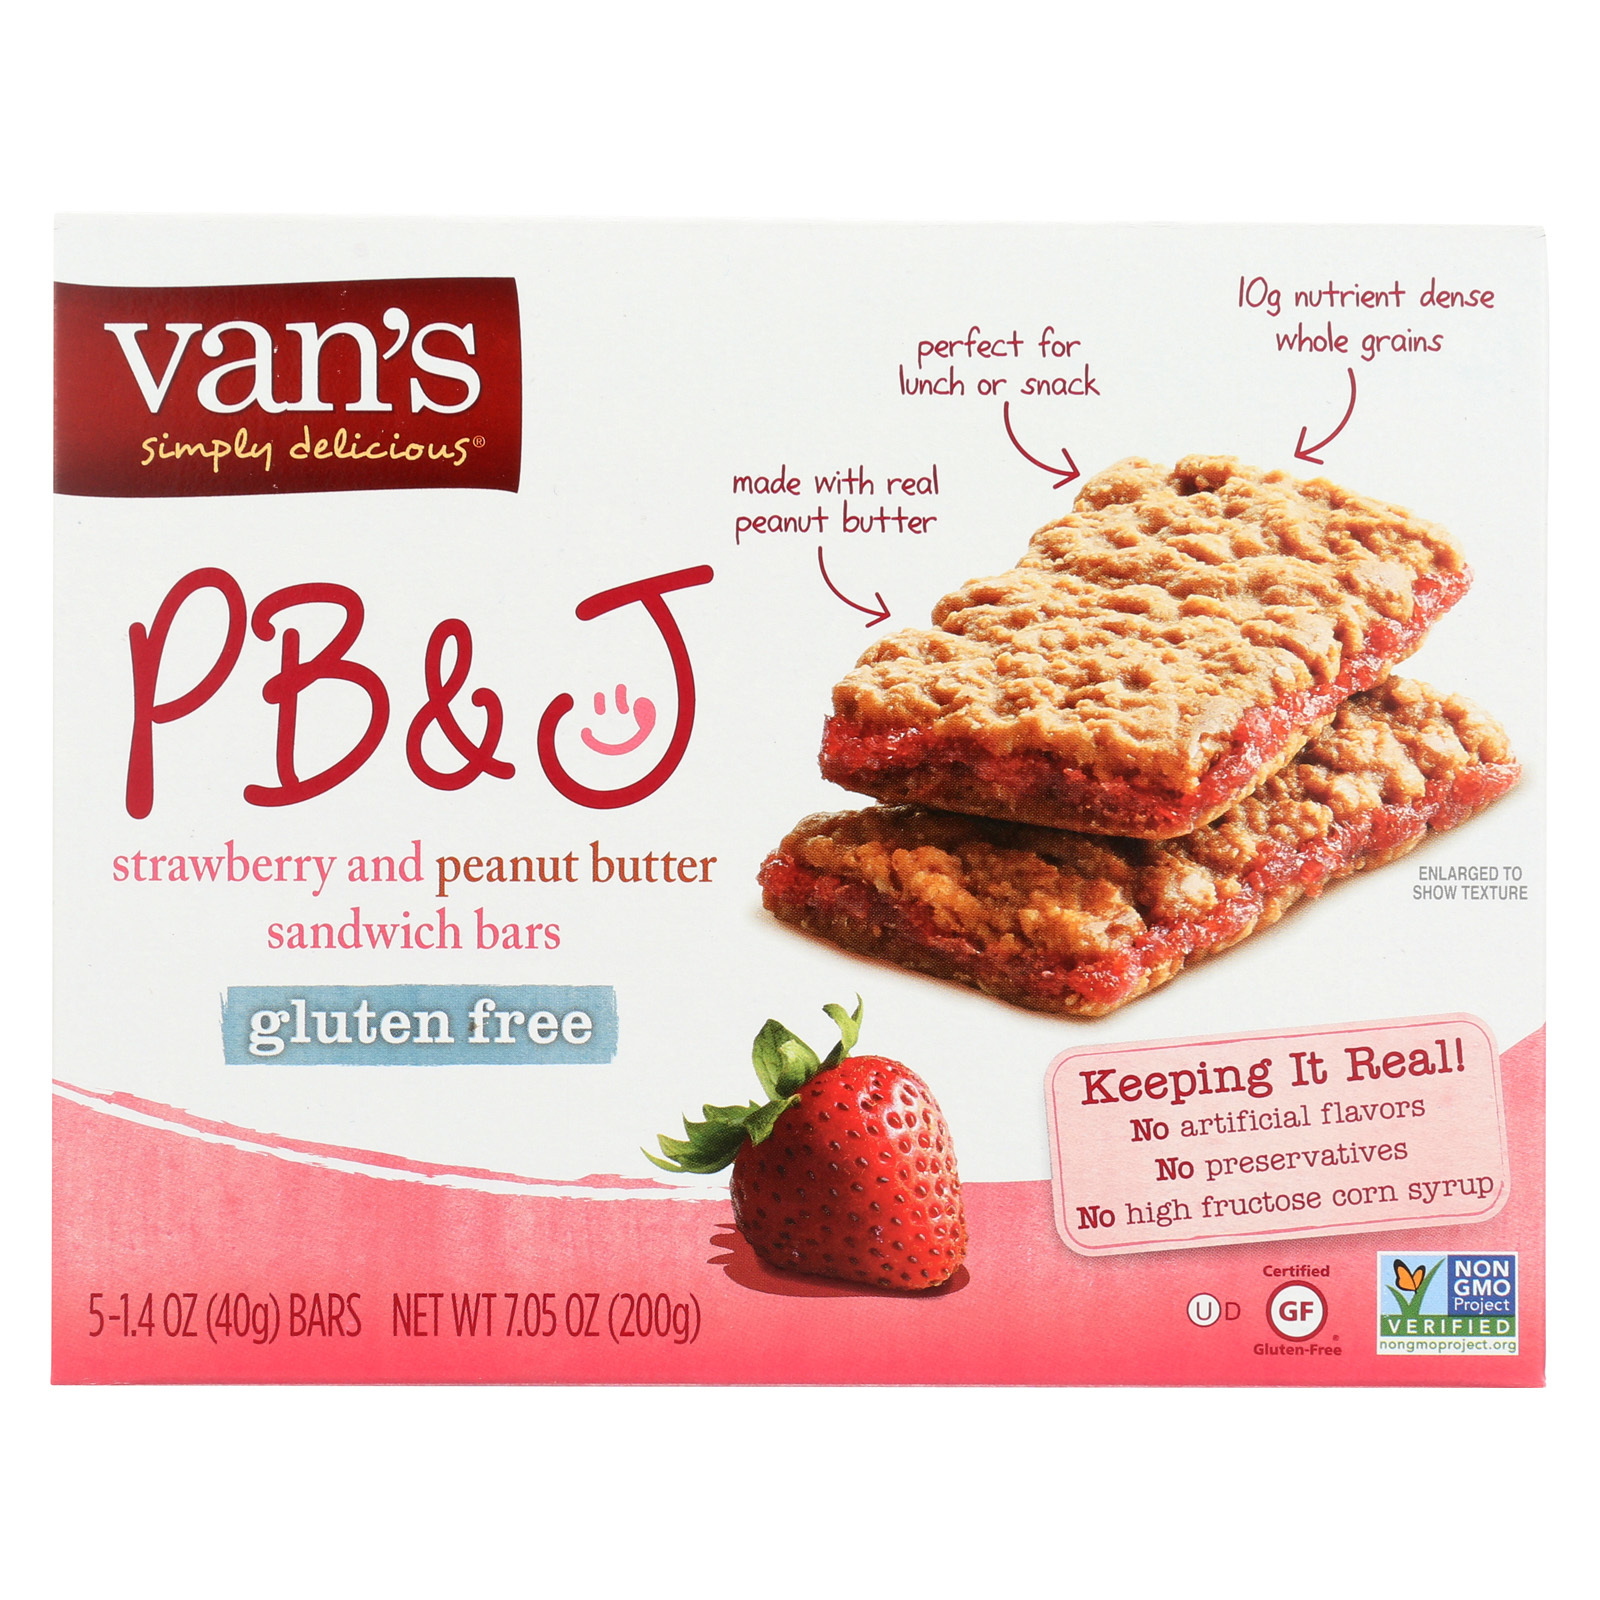 Van's Natural Foods Gluten Free Sandwich Bars - Strawberry and Peanuts Butter - Case of 6 - 1.4 oz.